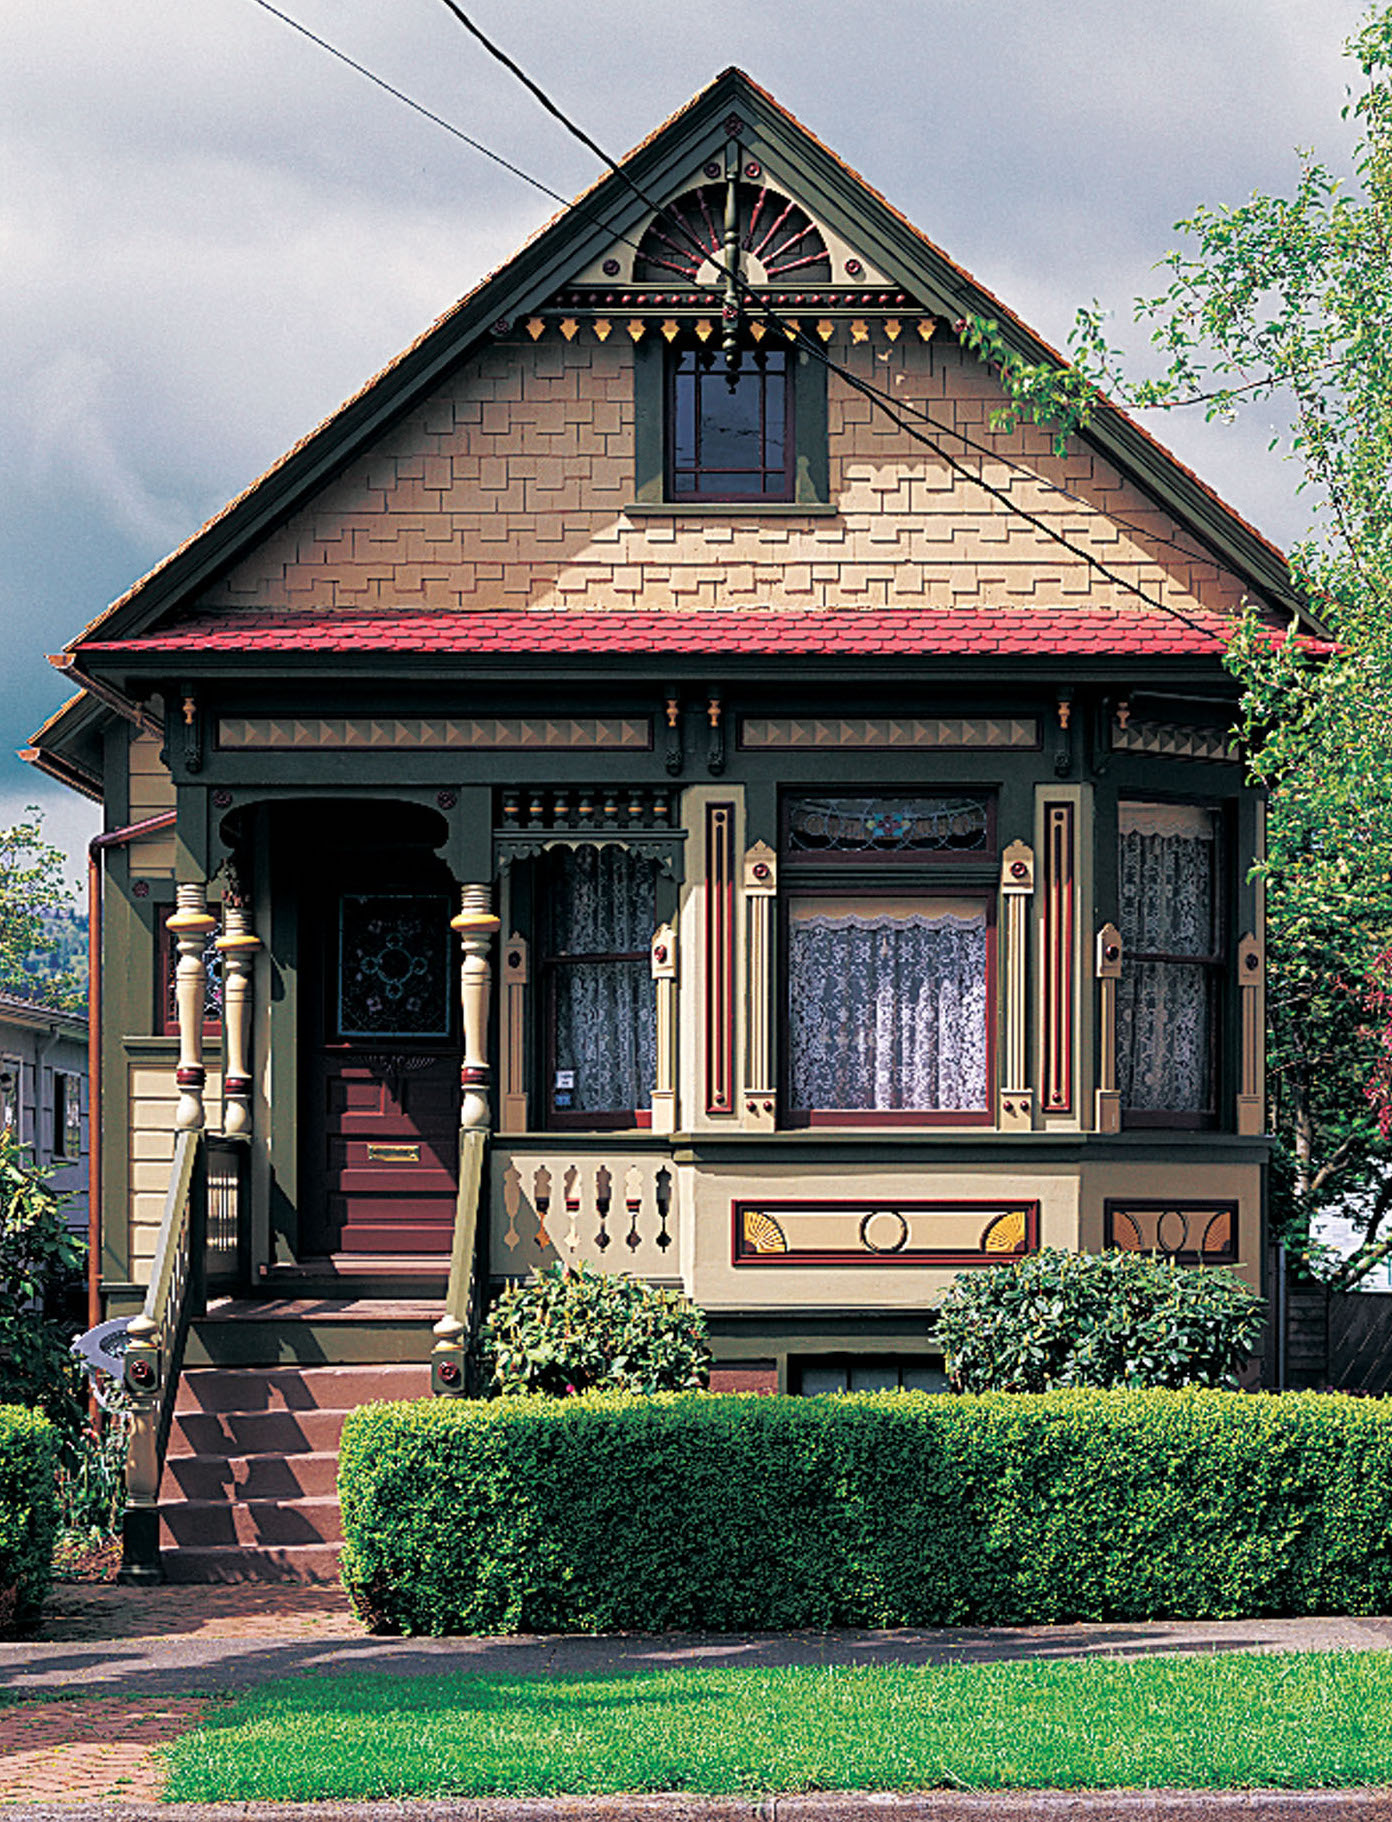 Victorian cottage in Portland